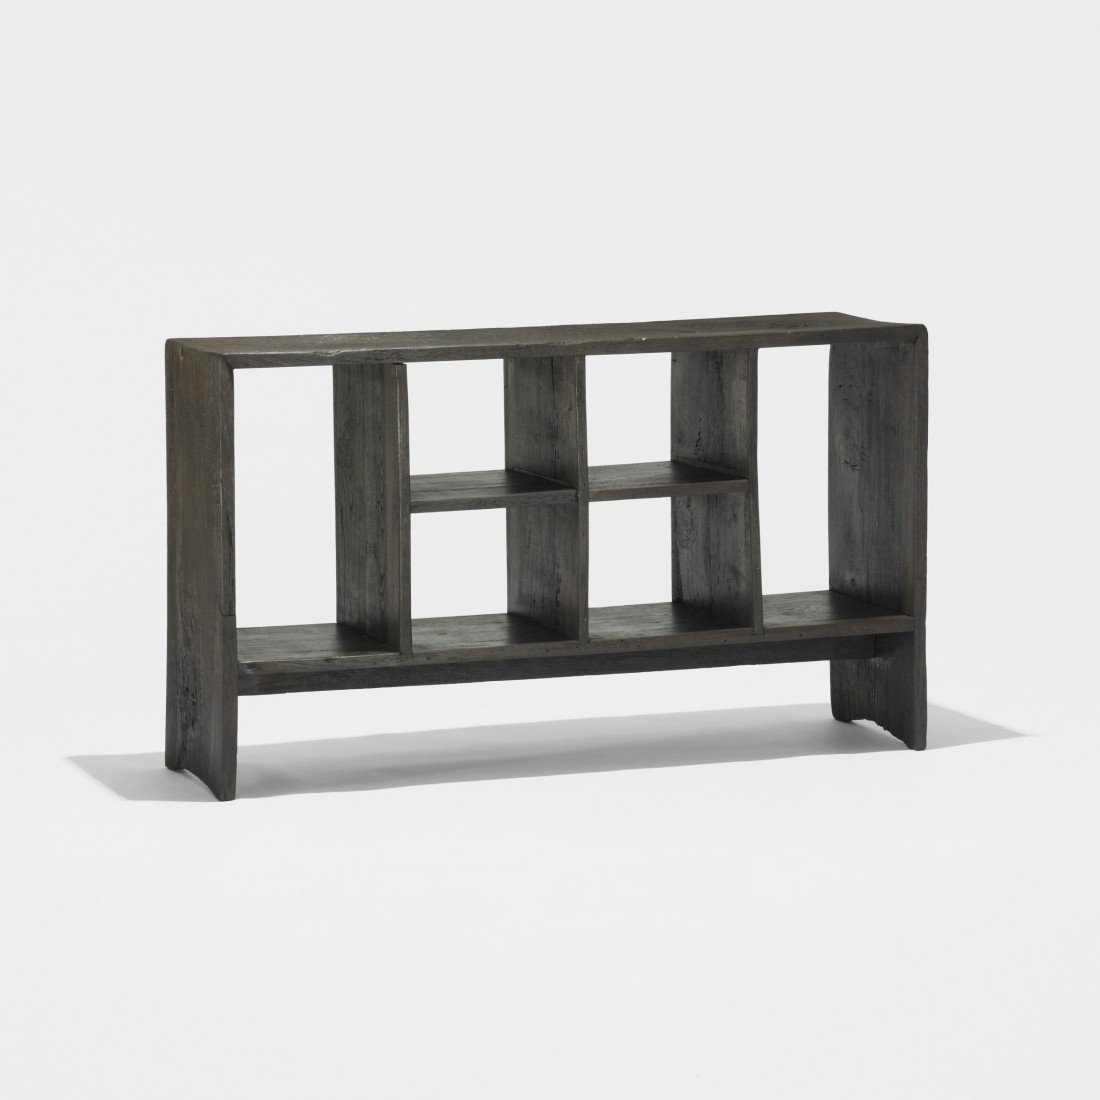 166: Pierre Jeanneret file rack